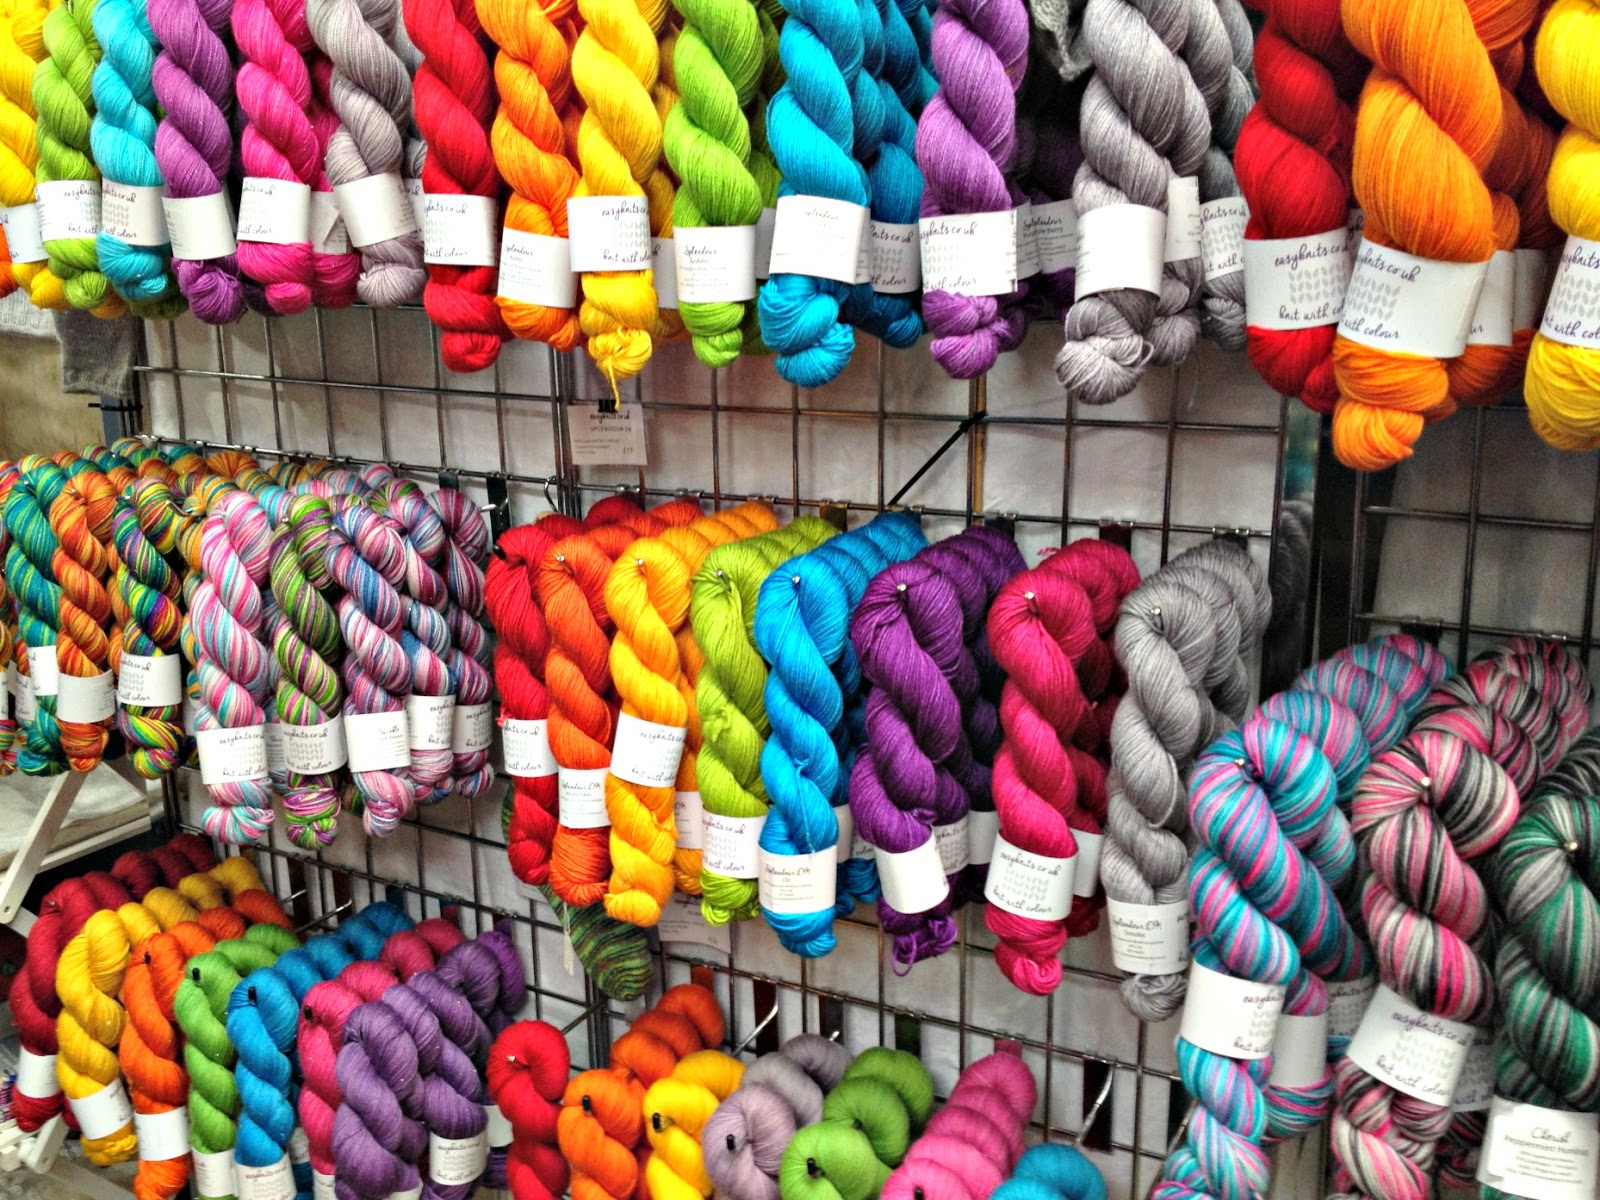 easyknits.co.uk stand at woolfest - bright colours of yarn and wool